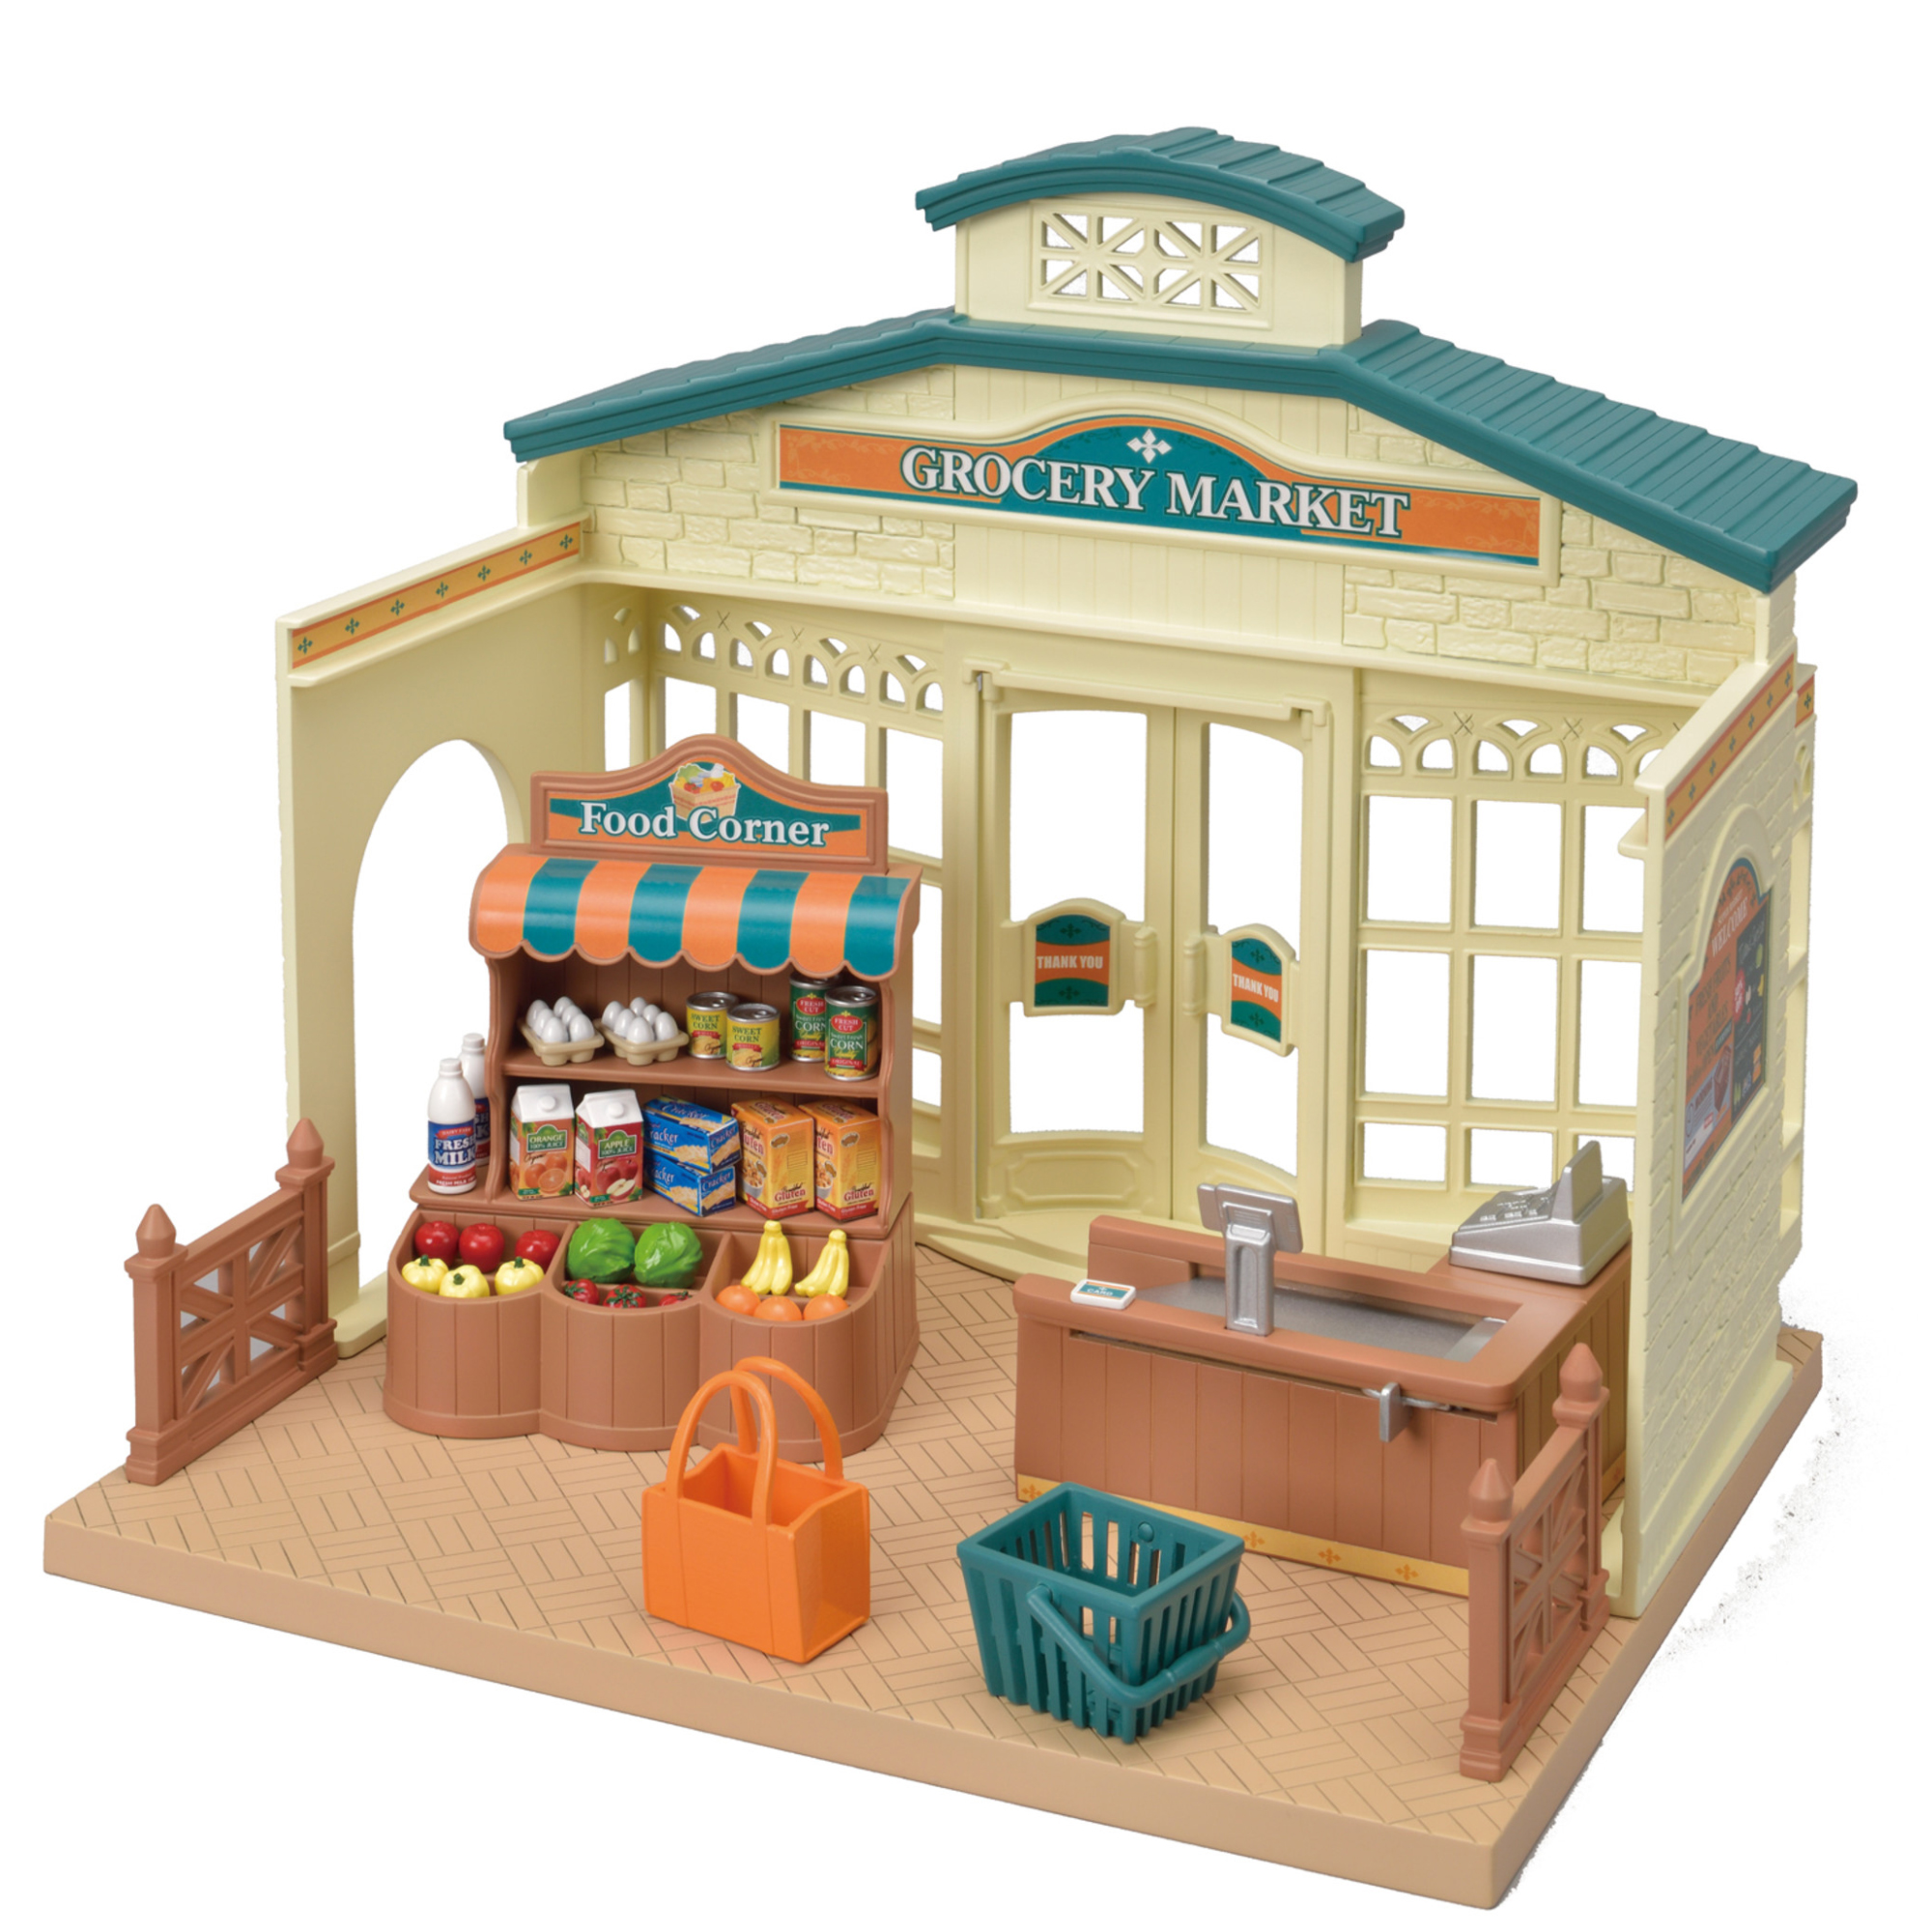 Calico Critters Grocery Market, Over 30 Pieces of Furniture and Accessories